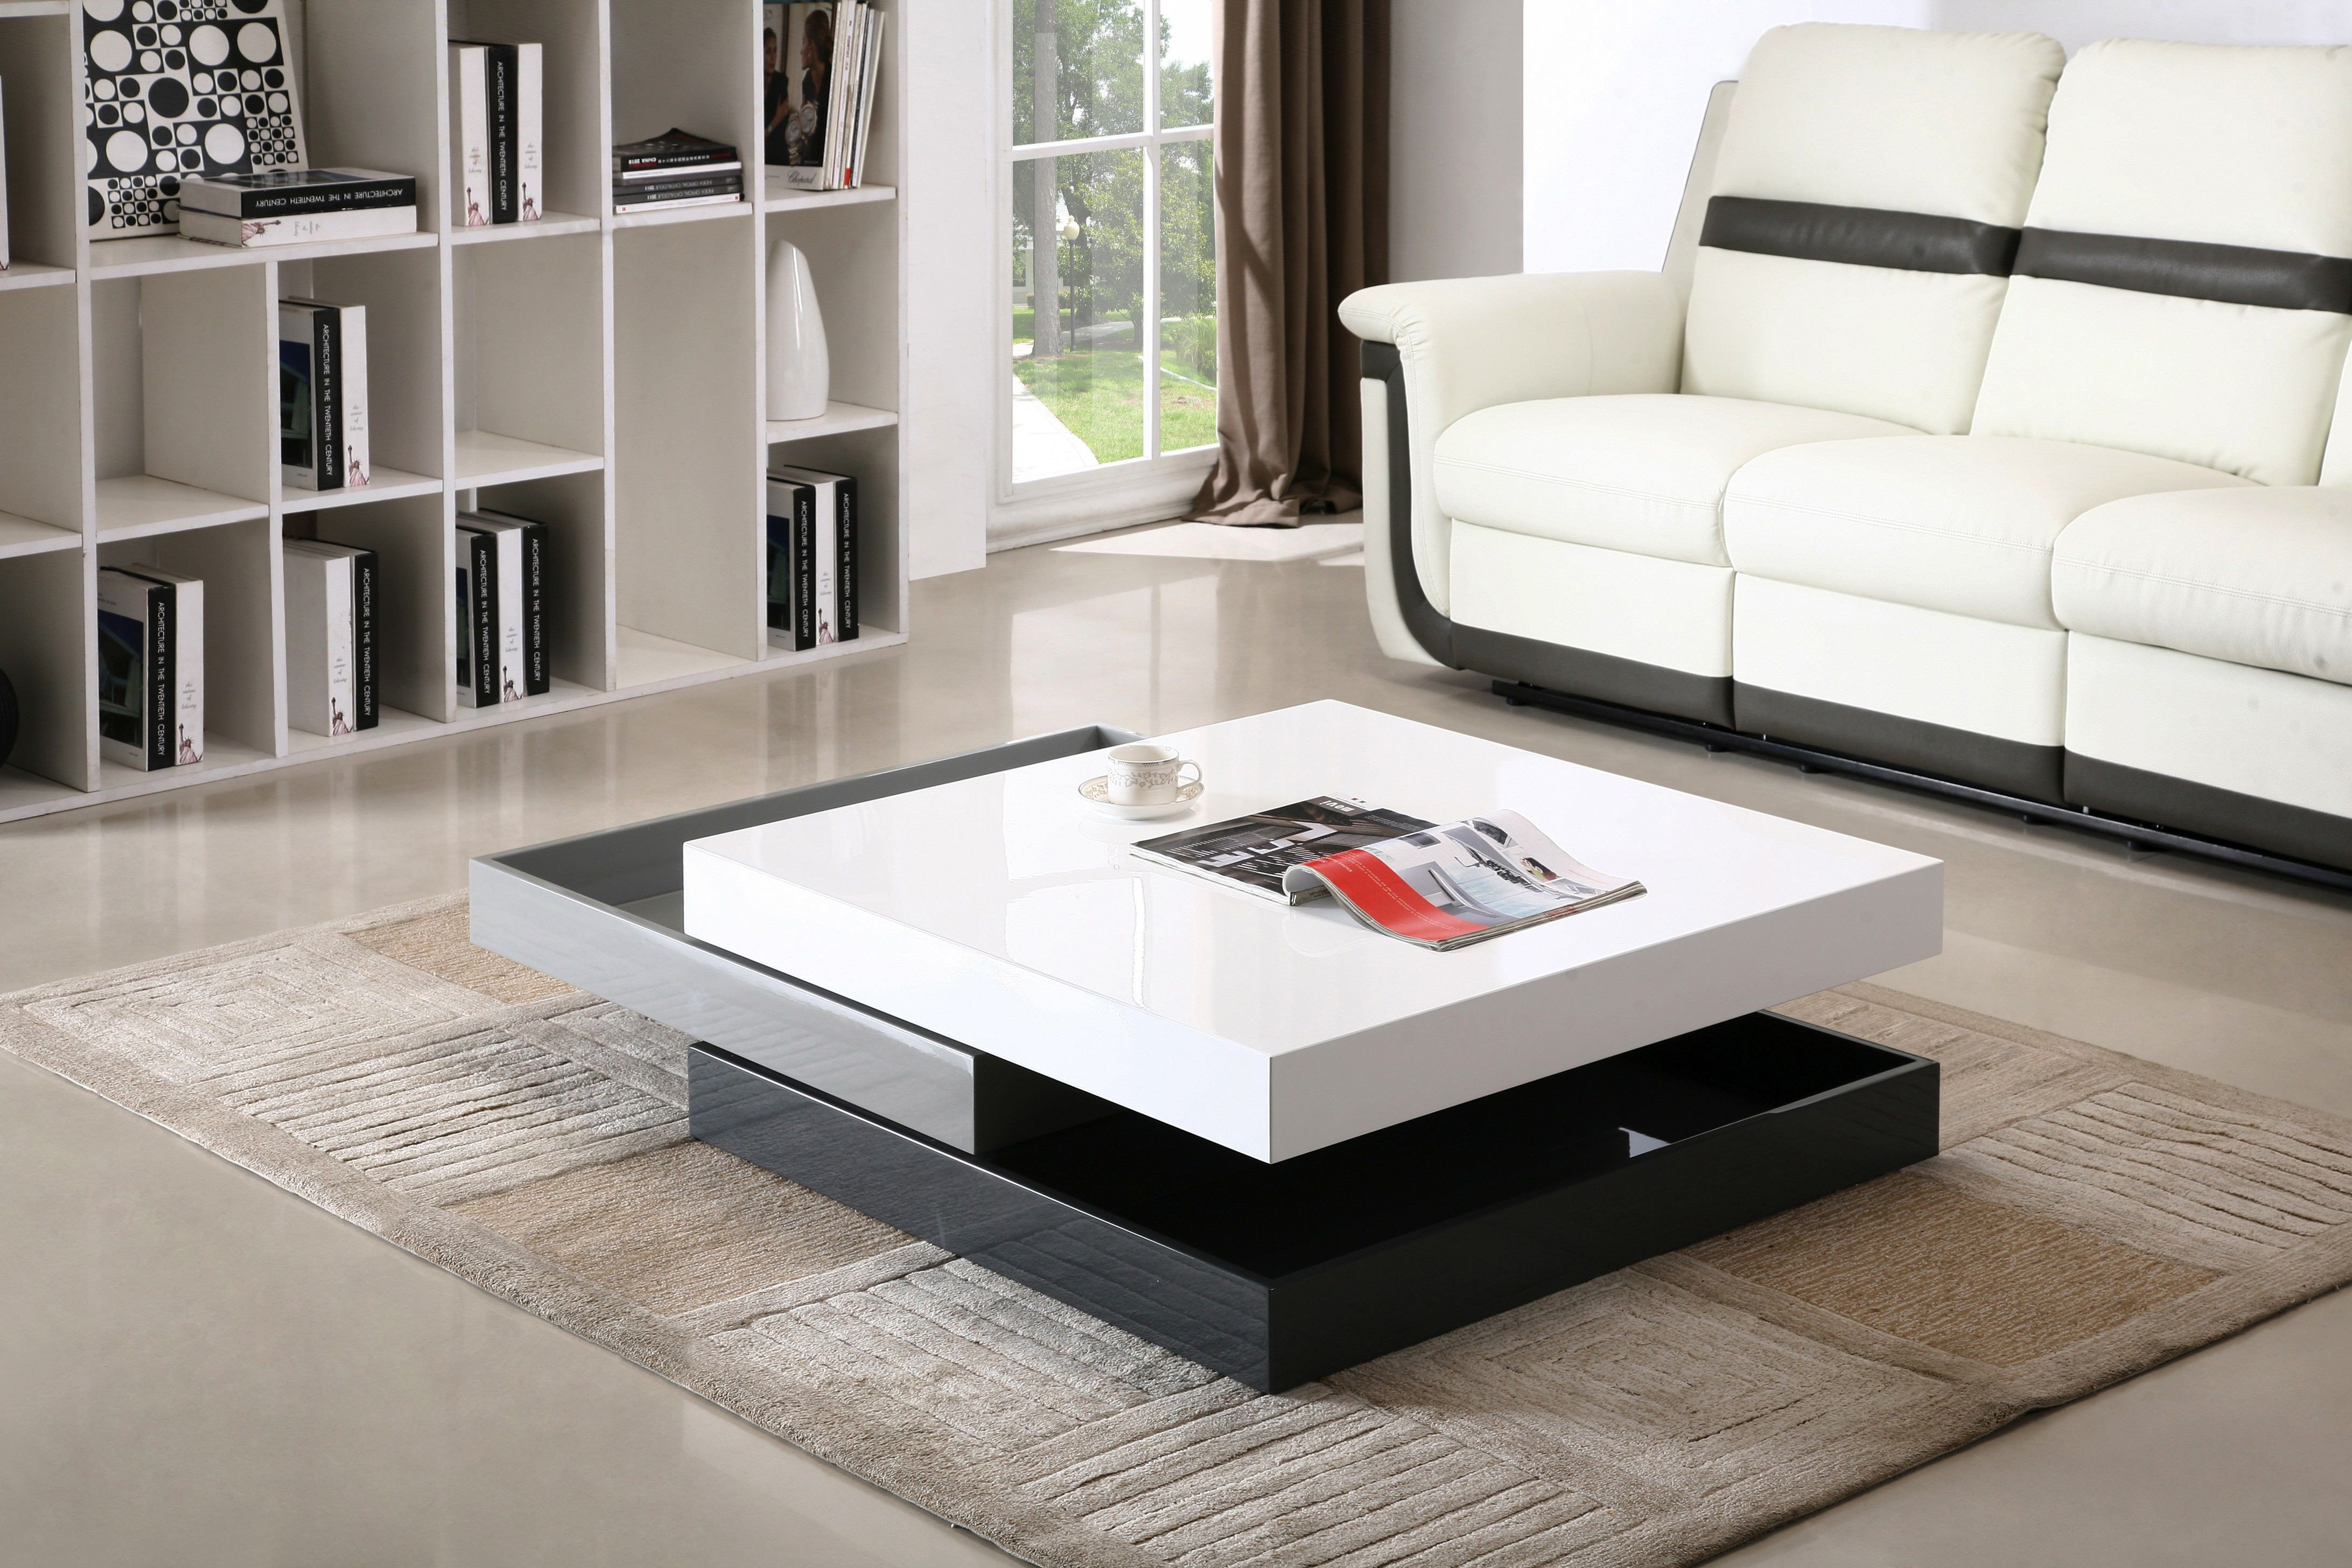 Contemporary Living Room Tables A Living Room Table Buying Guide and Ideas Midcityeast